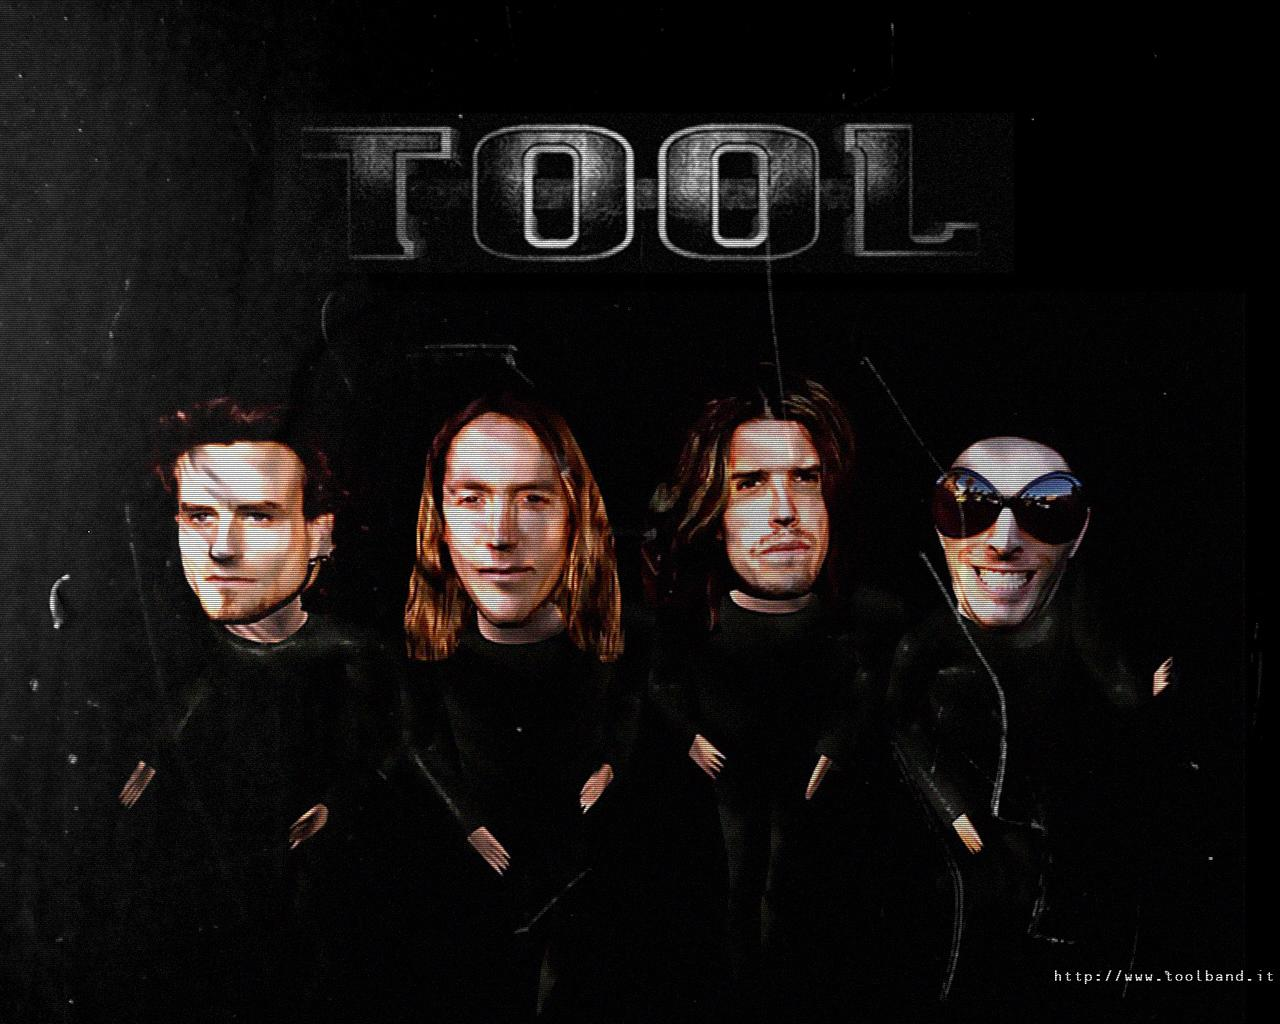 tool 2 bandswallpapers free wallpapers music wallpaper desktop